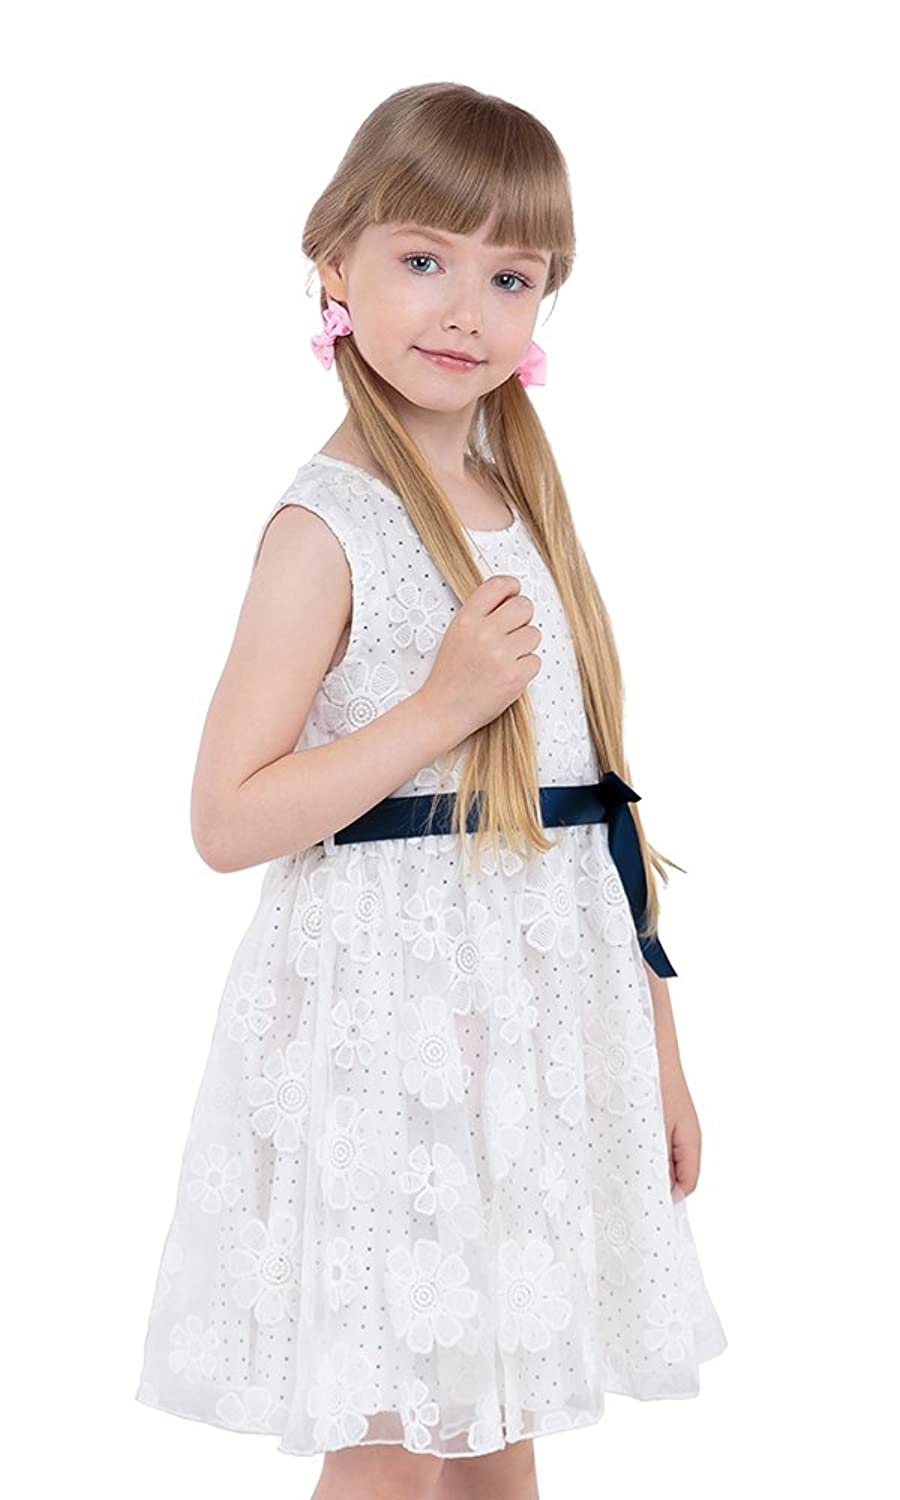 JI Little Girls Dresses With Ribbon Lace Top and Polka Dot Lining Size 3-7